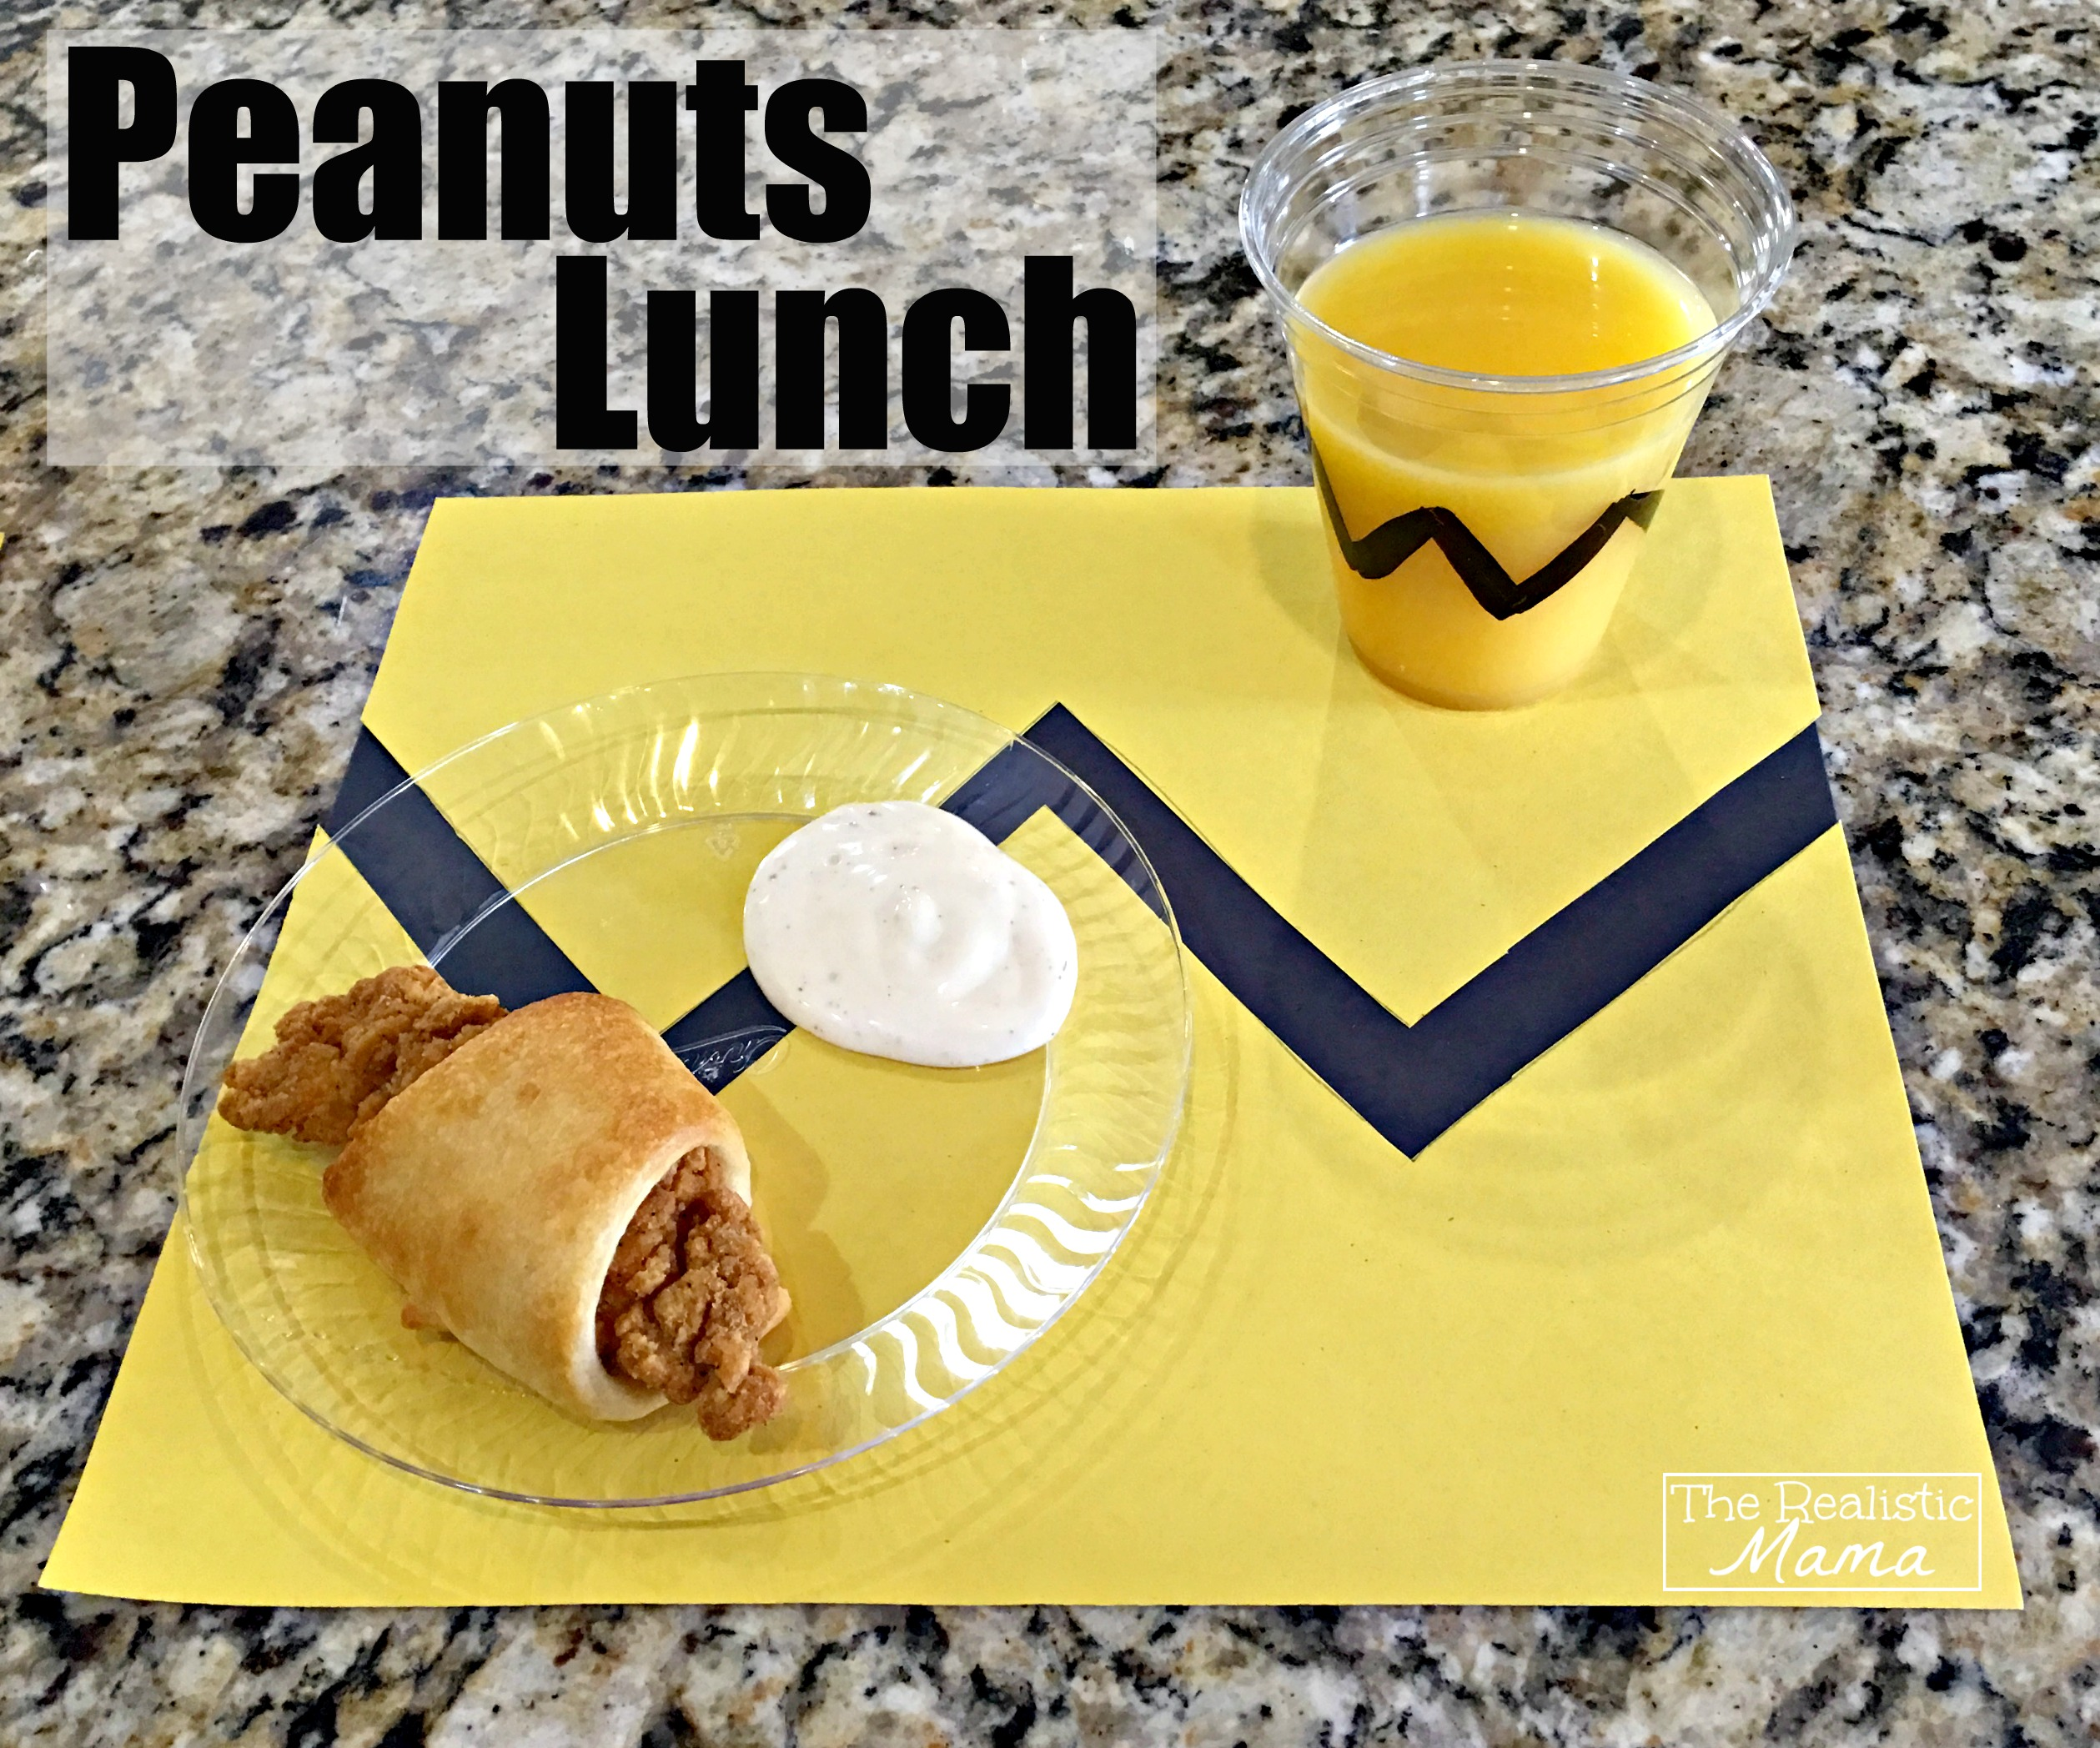 Peanuts Lunch